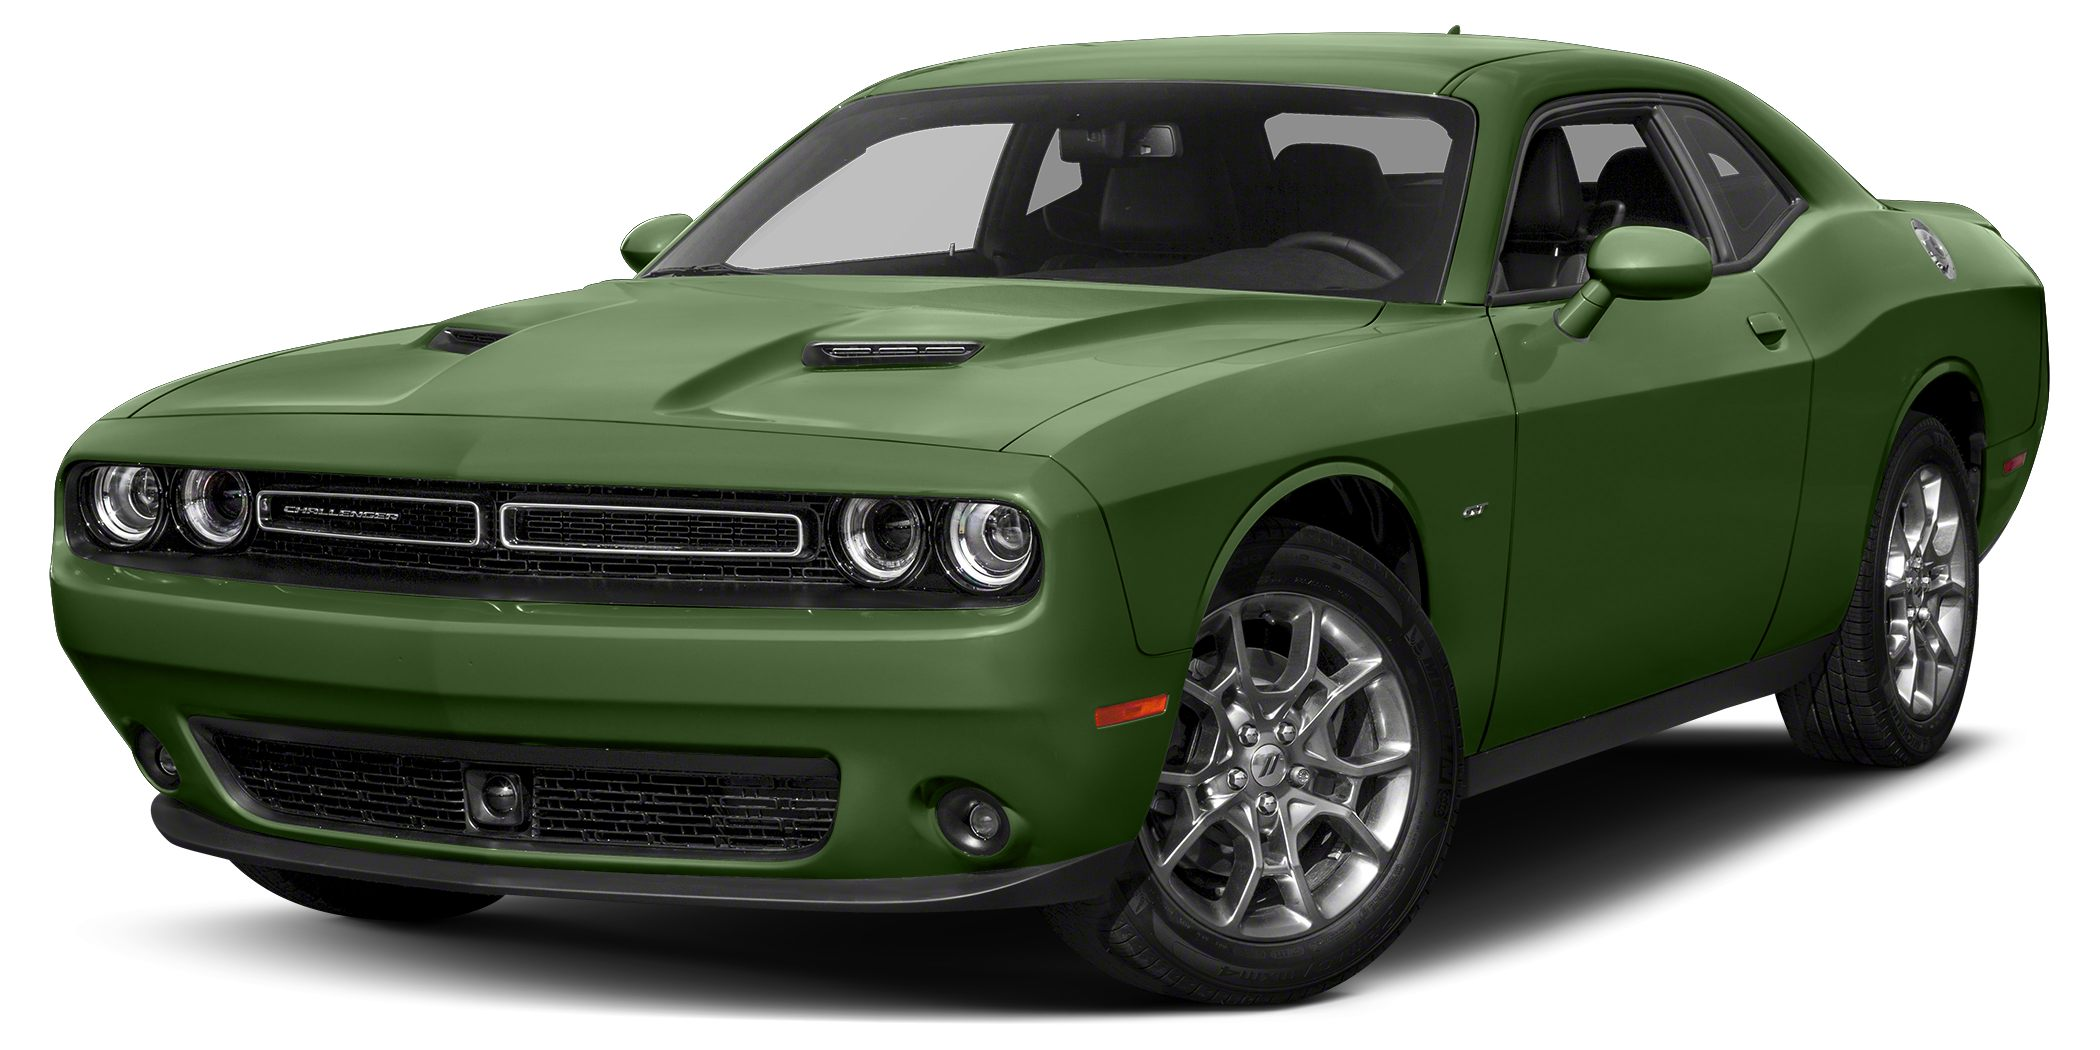 2018 Dodge Challenger GT SPECIAL ONLINE PRICE INCLUDES 2250 IN REBATES THAT ALL CUSTOMERS QUALIF